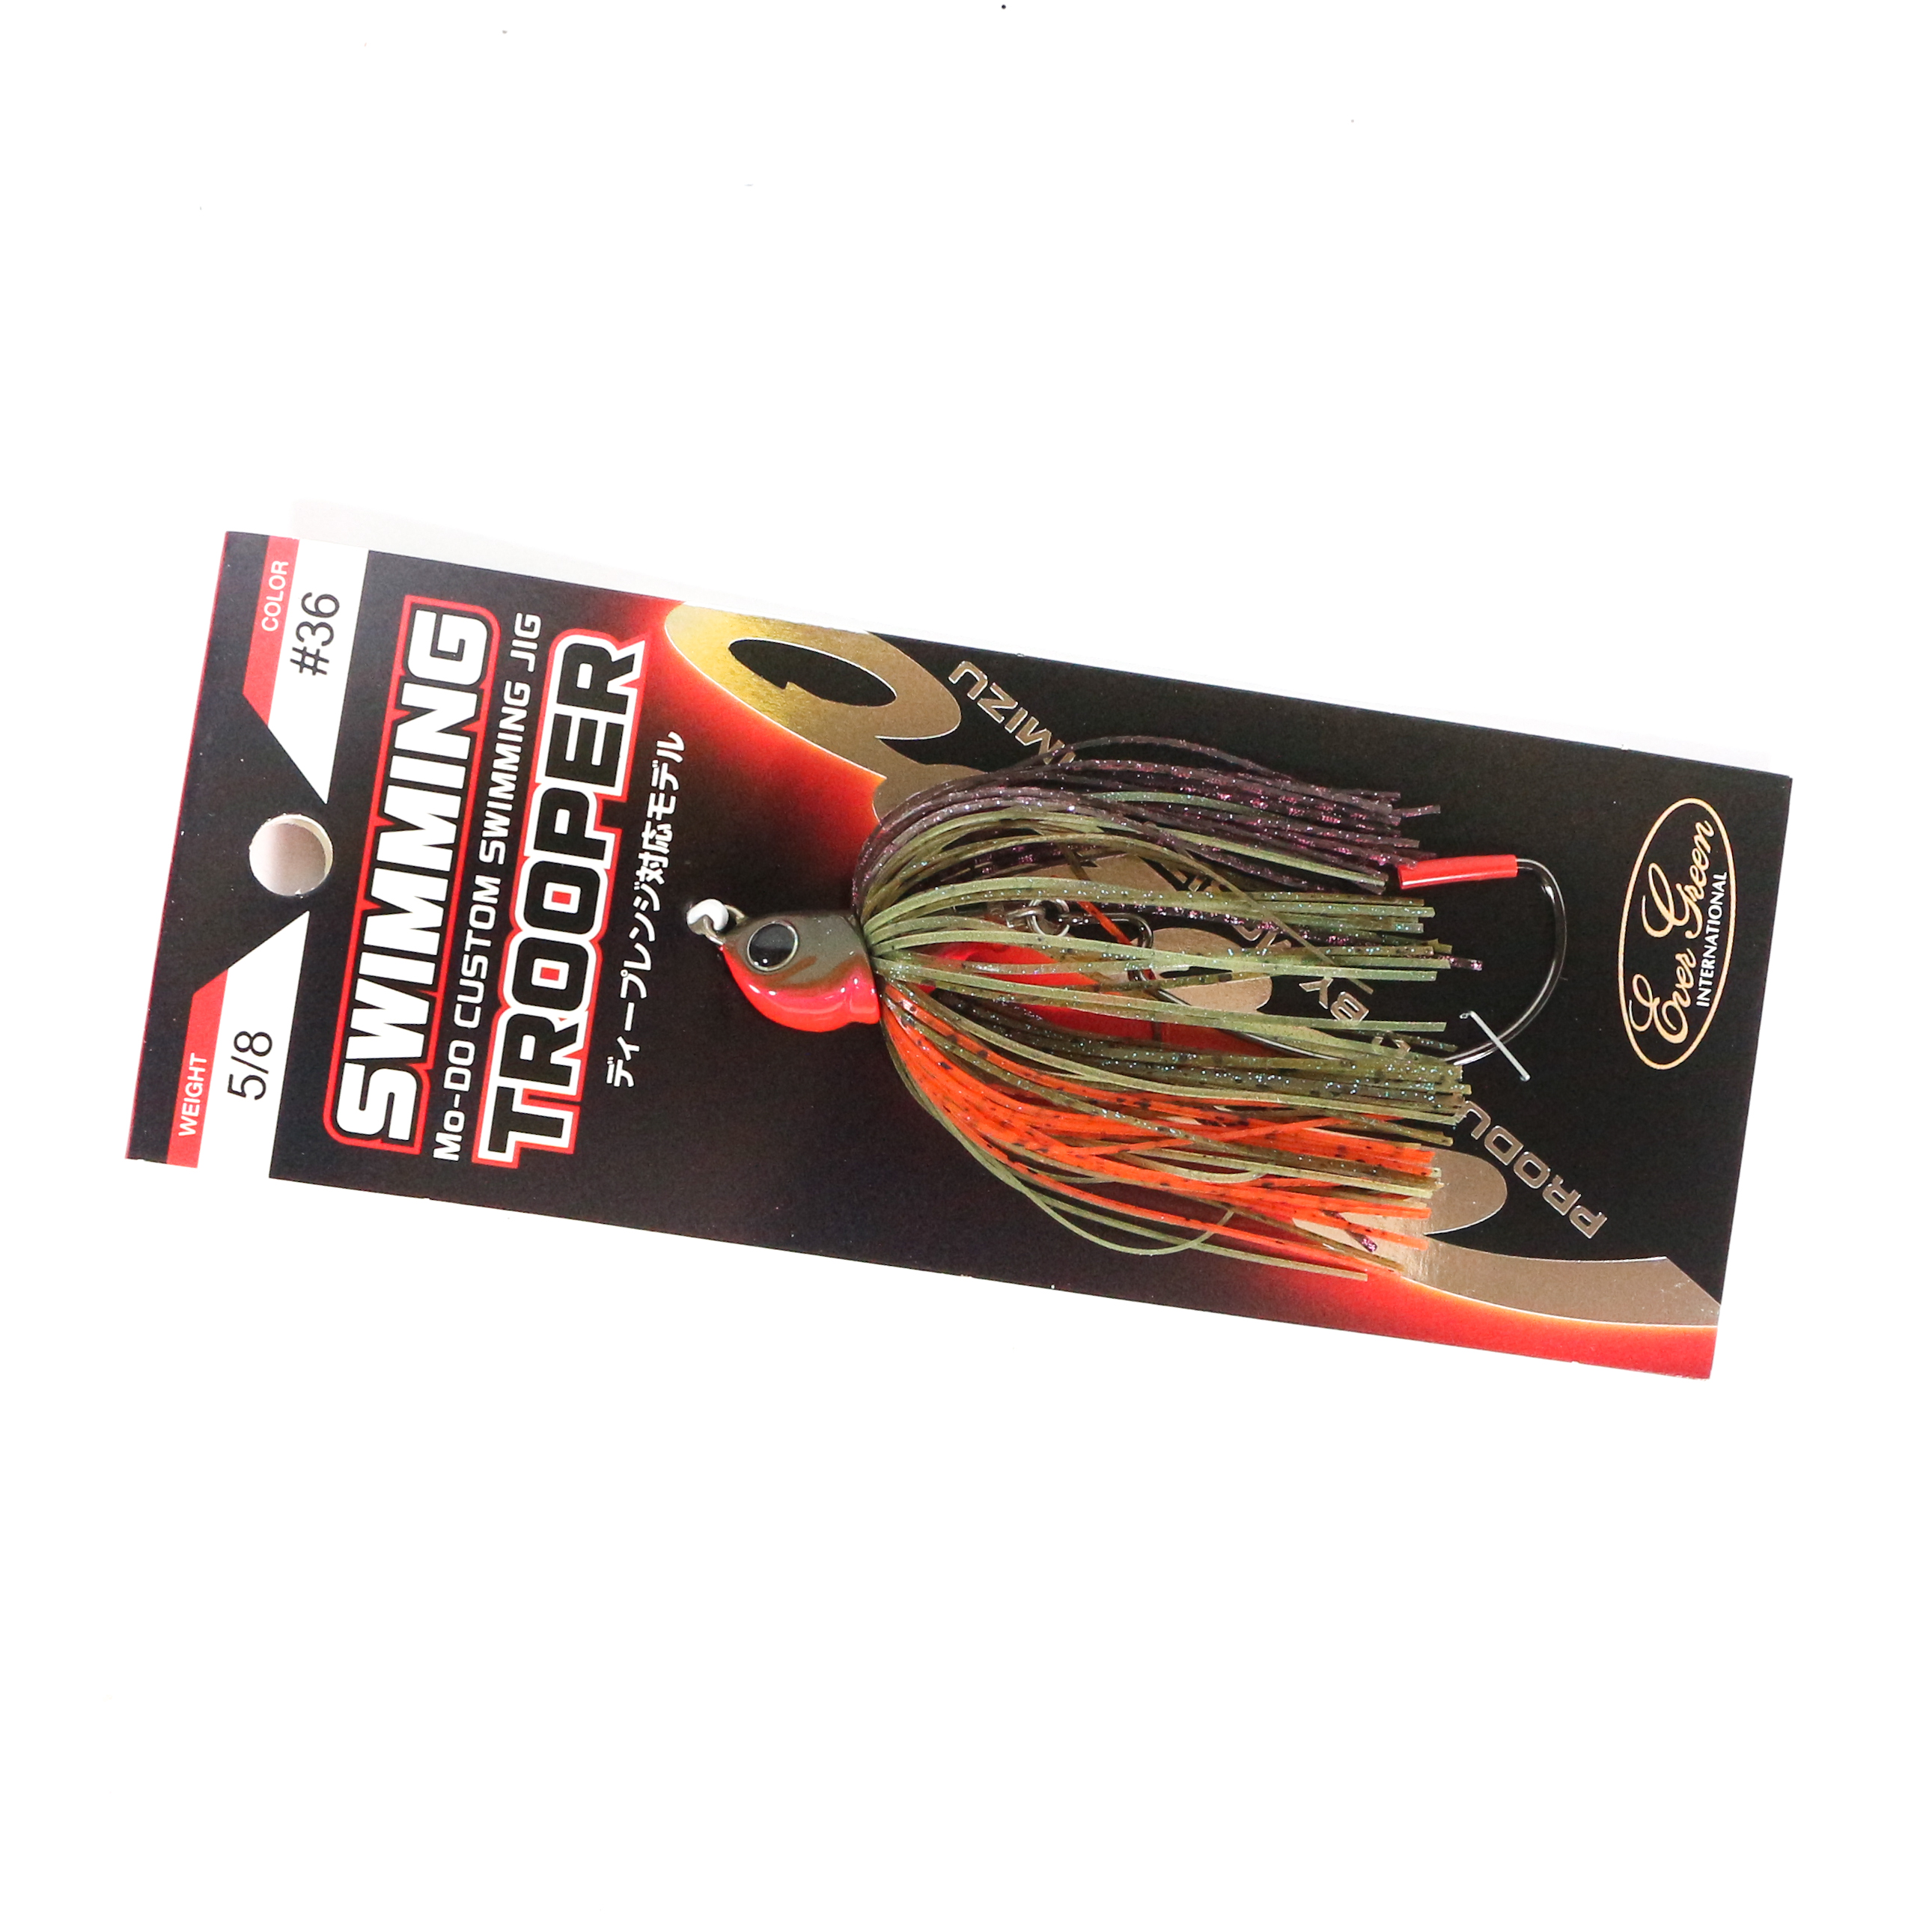 Evergreen Swimming Trooper Rubber Jig 5/8 oz Sinking Lure 36 (0324)